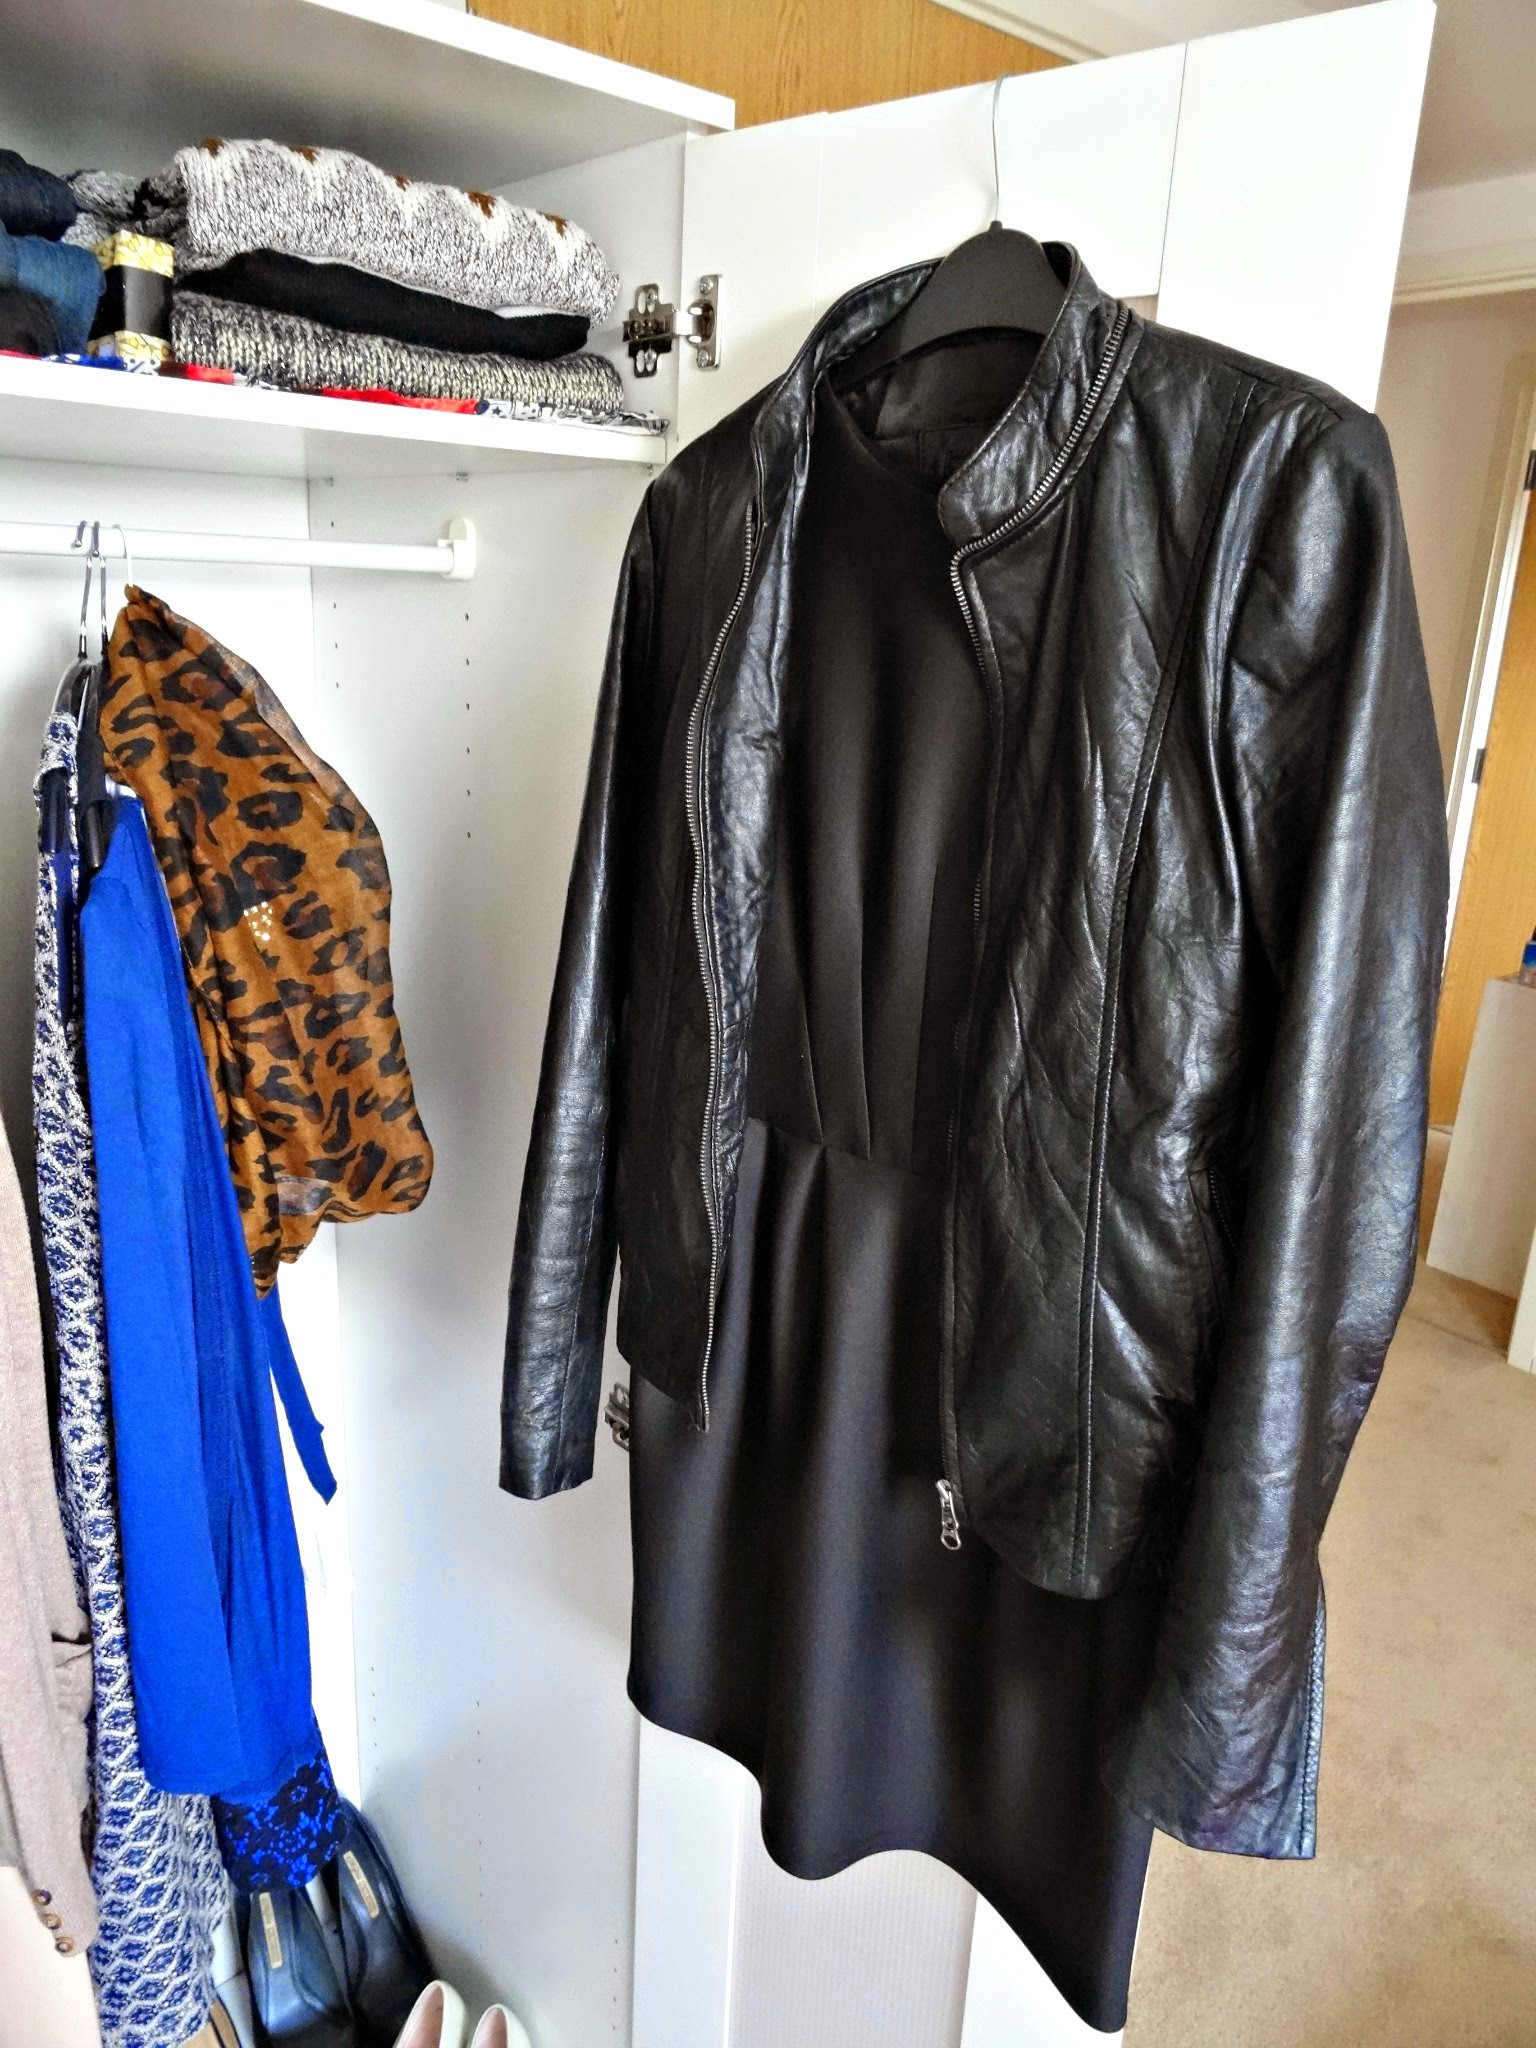 Leather jacket and dress on a hanger